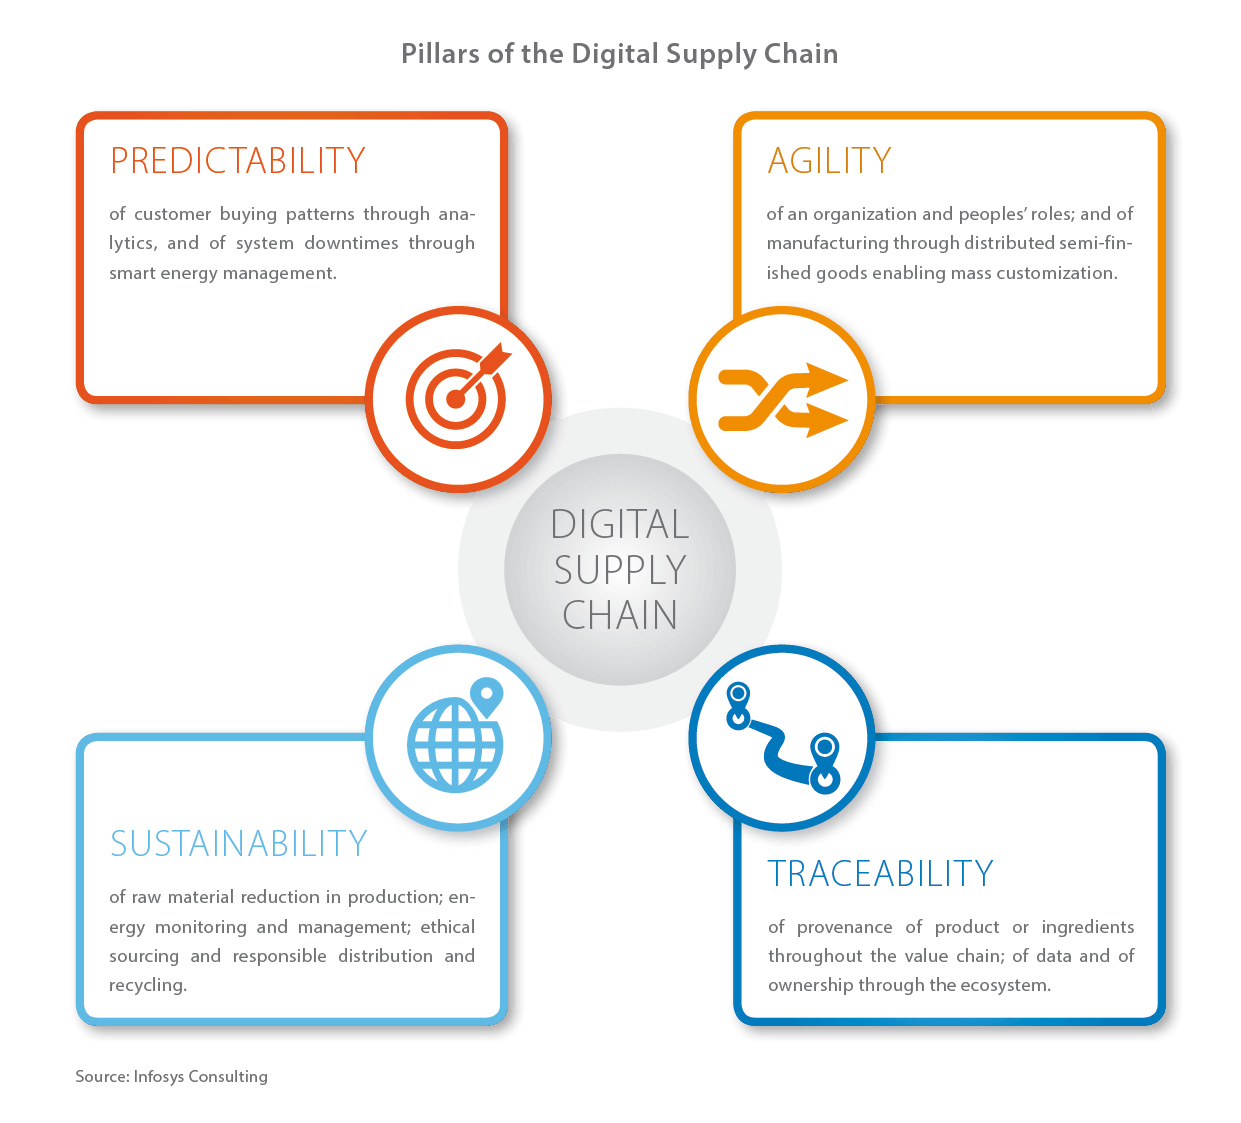 Creating Competitive Advantage Through A Digital Supply